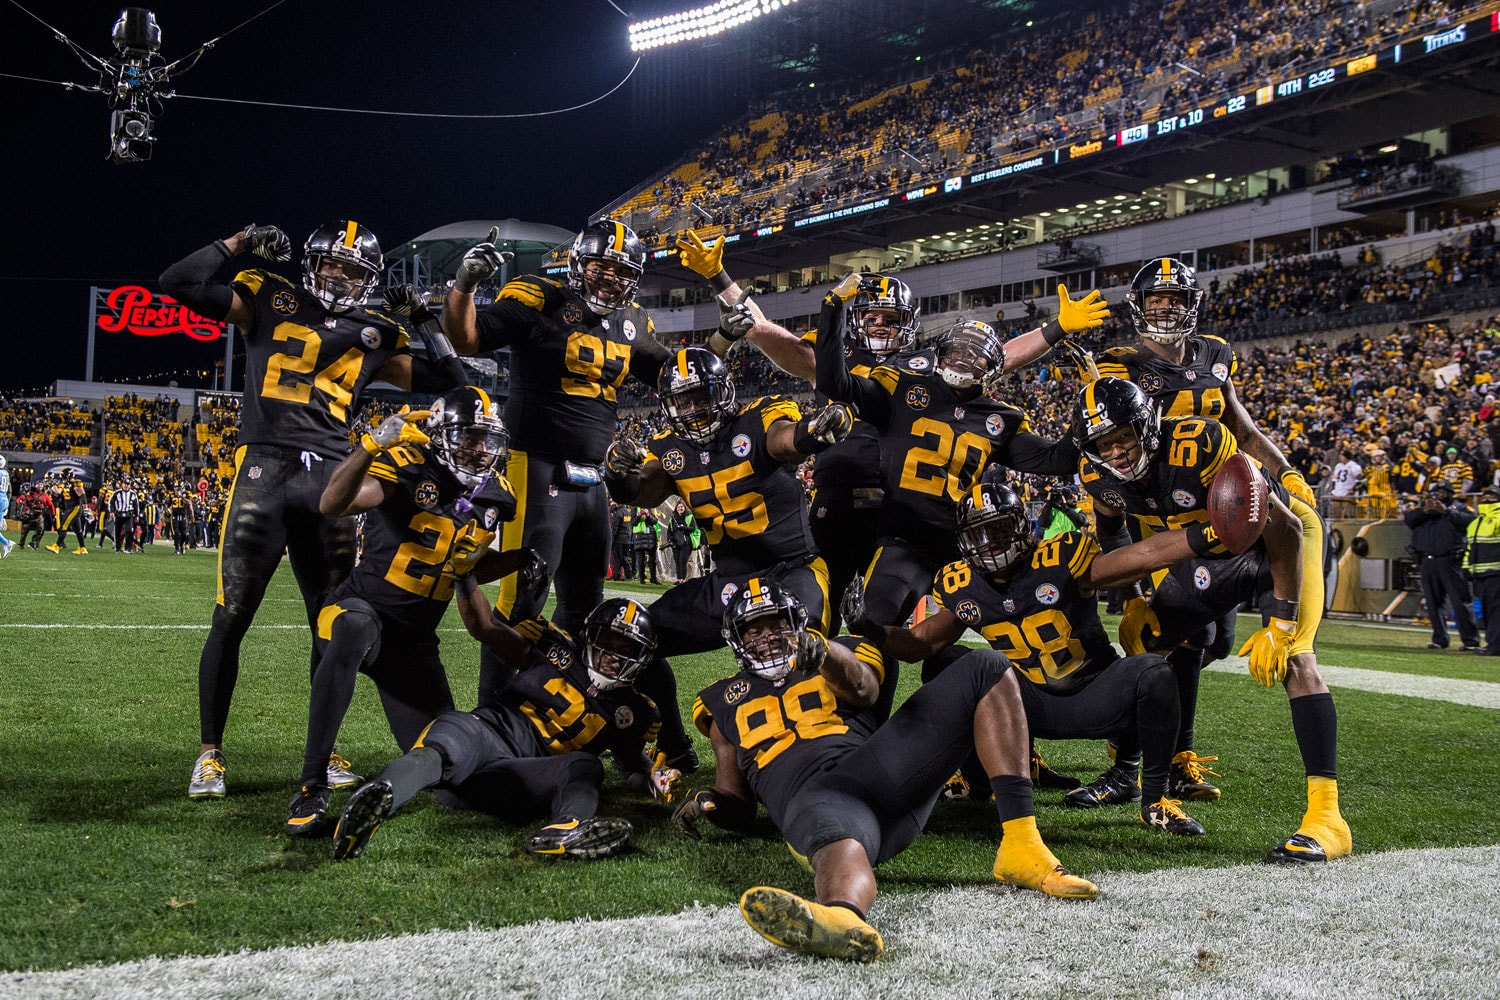 NFL Football in Pittsburgh   Courtesy of Pittsburgh Steelers/Dave Arrigo